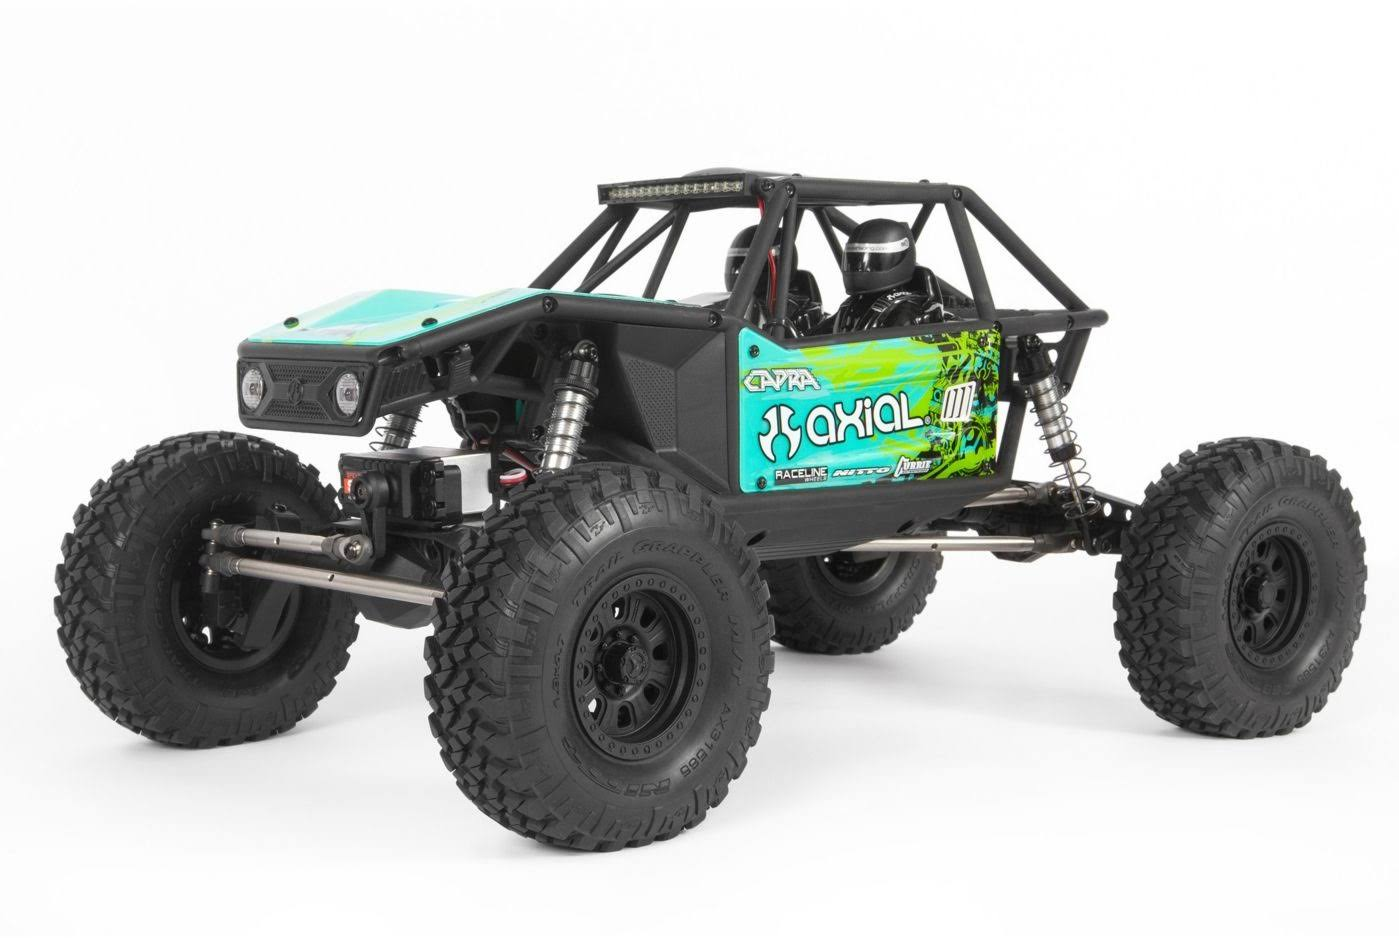 Axial Green 1/10 Capra 1.9 Unlimited 4WD RTR Trail Buggy AXI03000T2